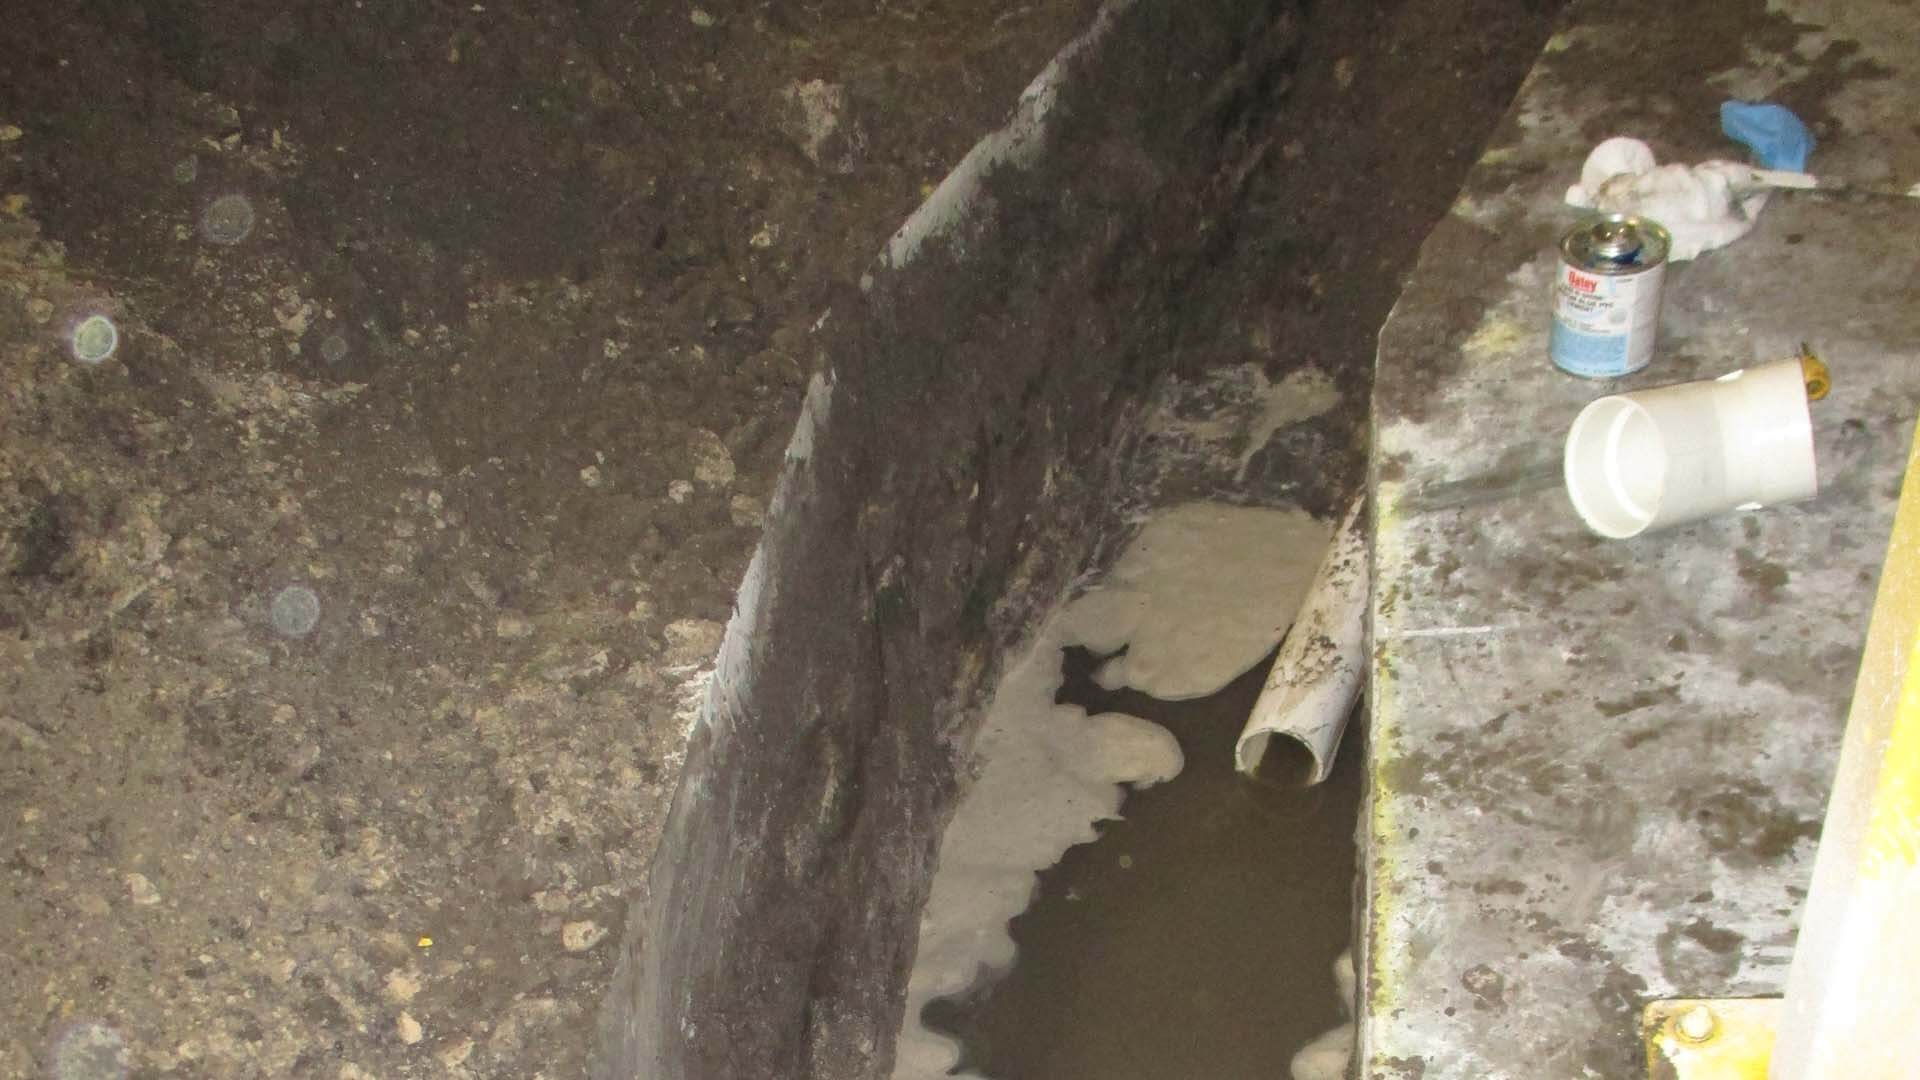 Flooded slab leak in Plant City being repaired by True Plumbers.